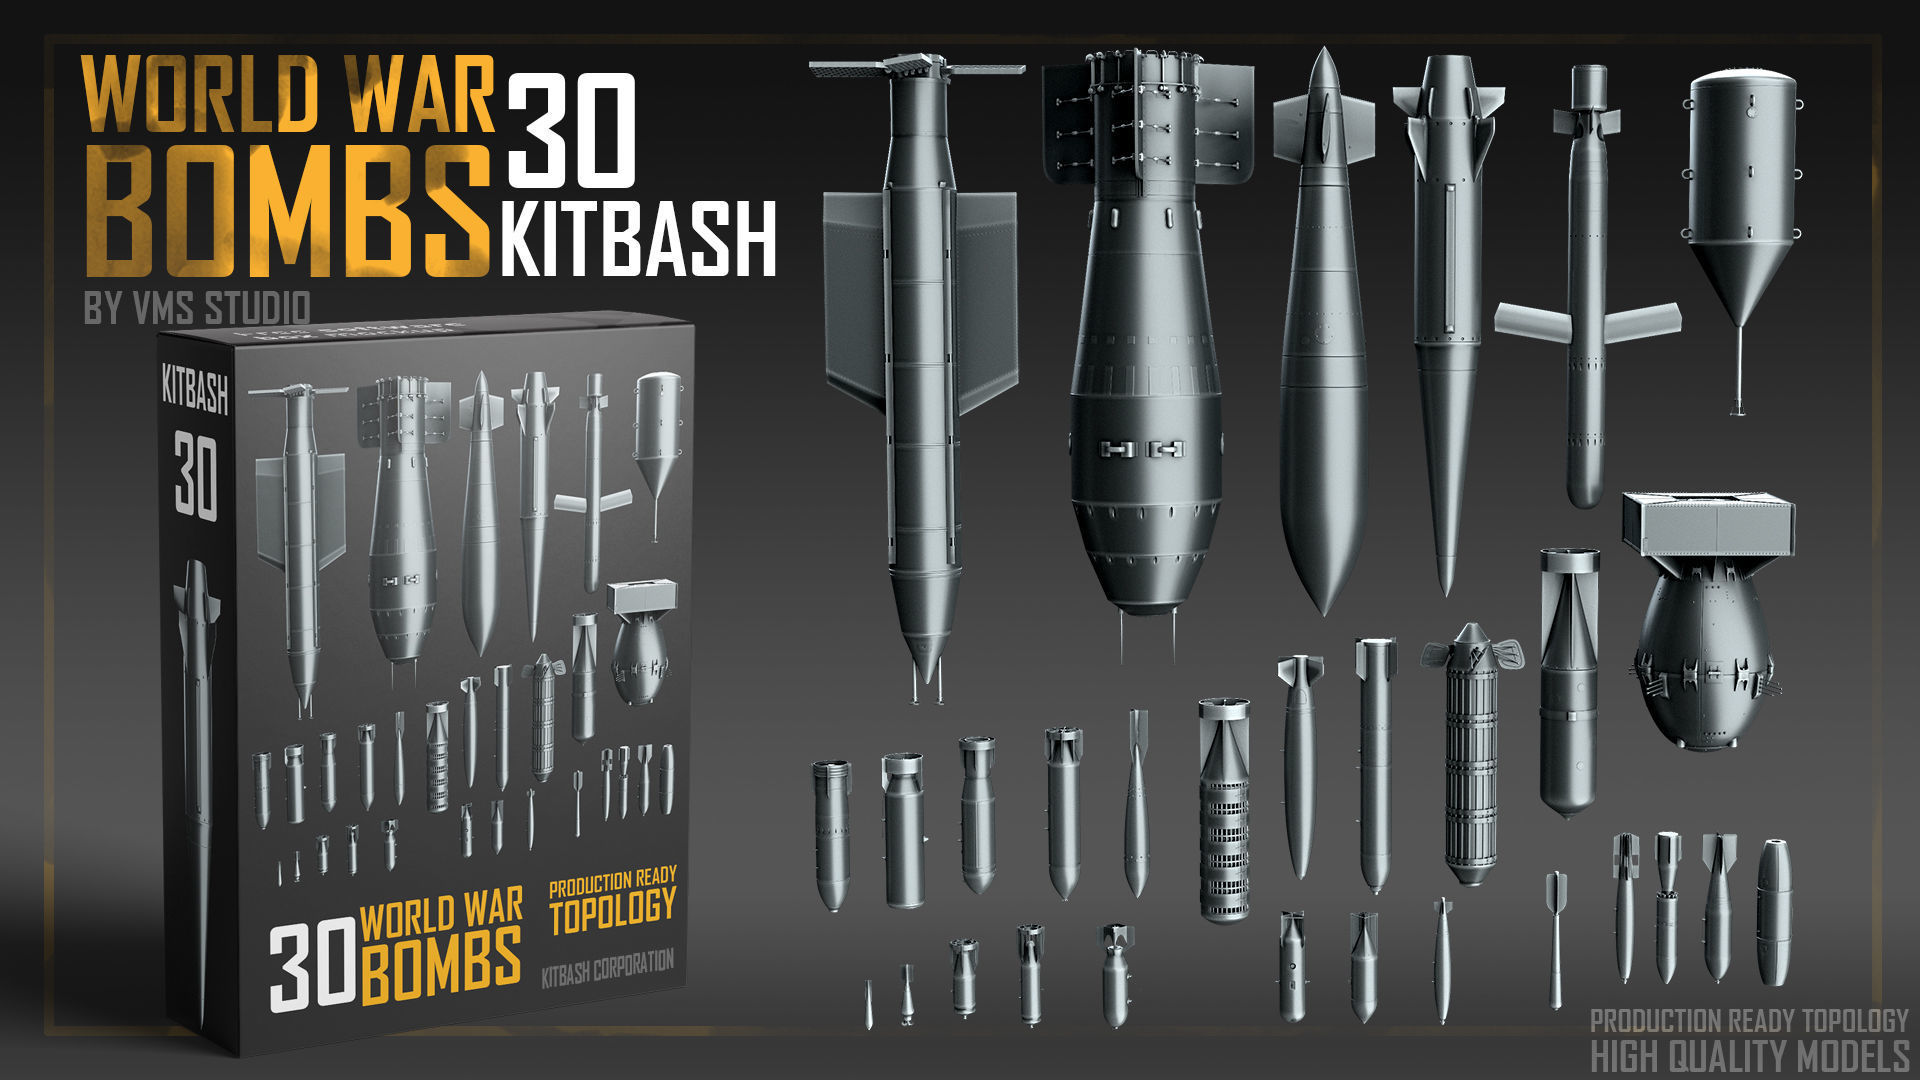 World War Bombs KITBASH bundle -30 Unique Rockets and Bombs